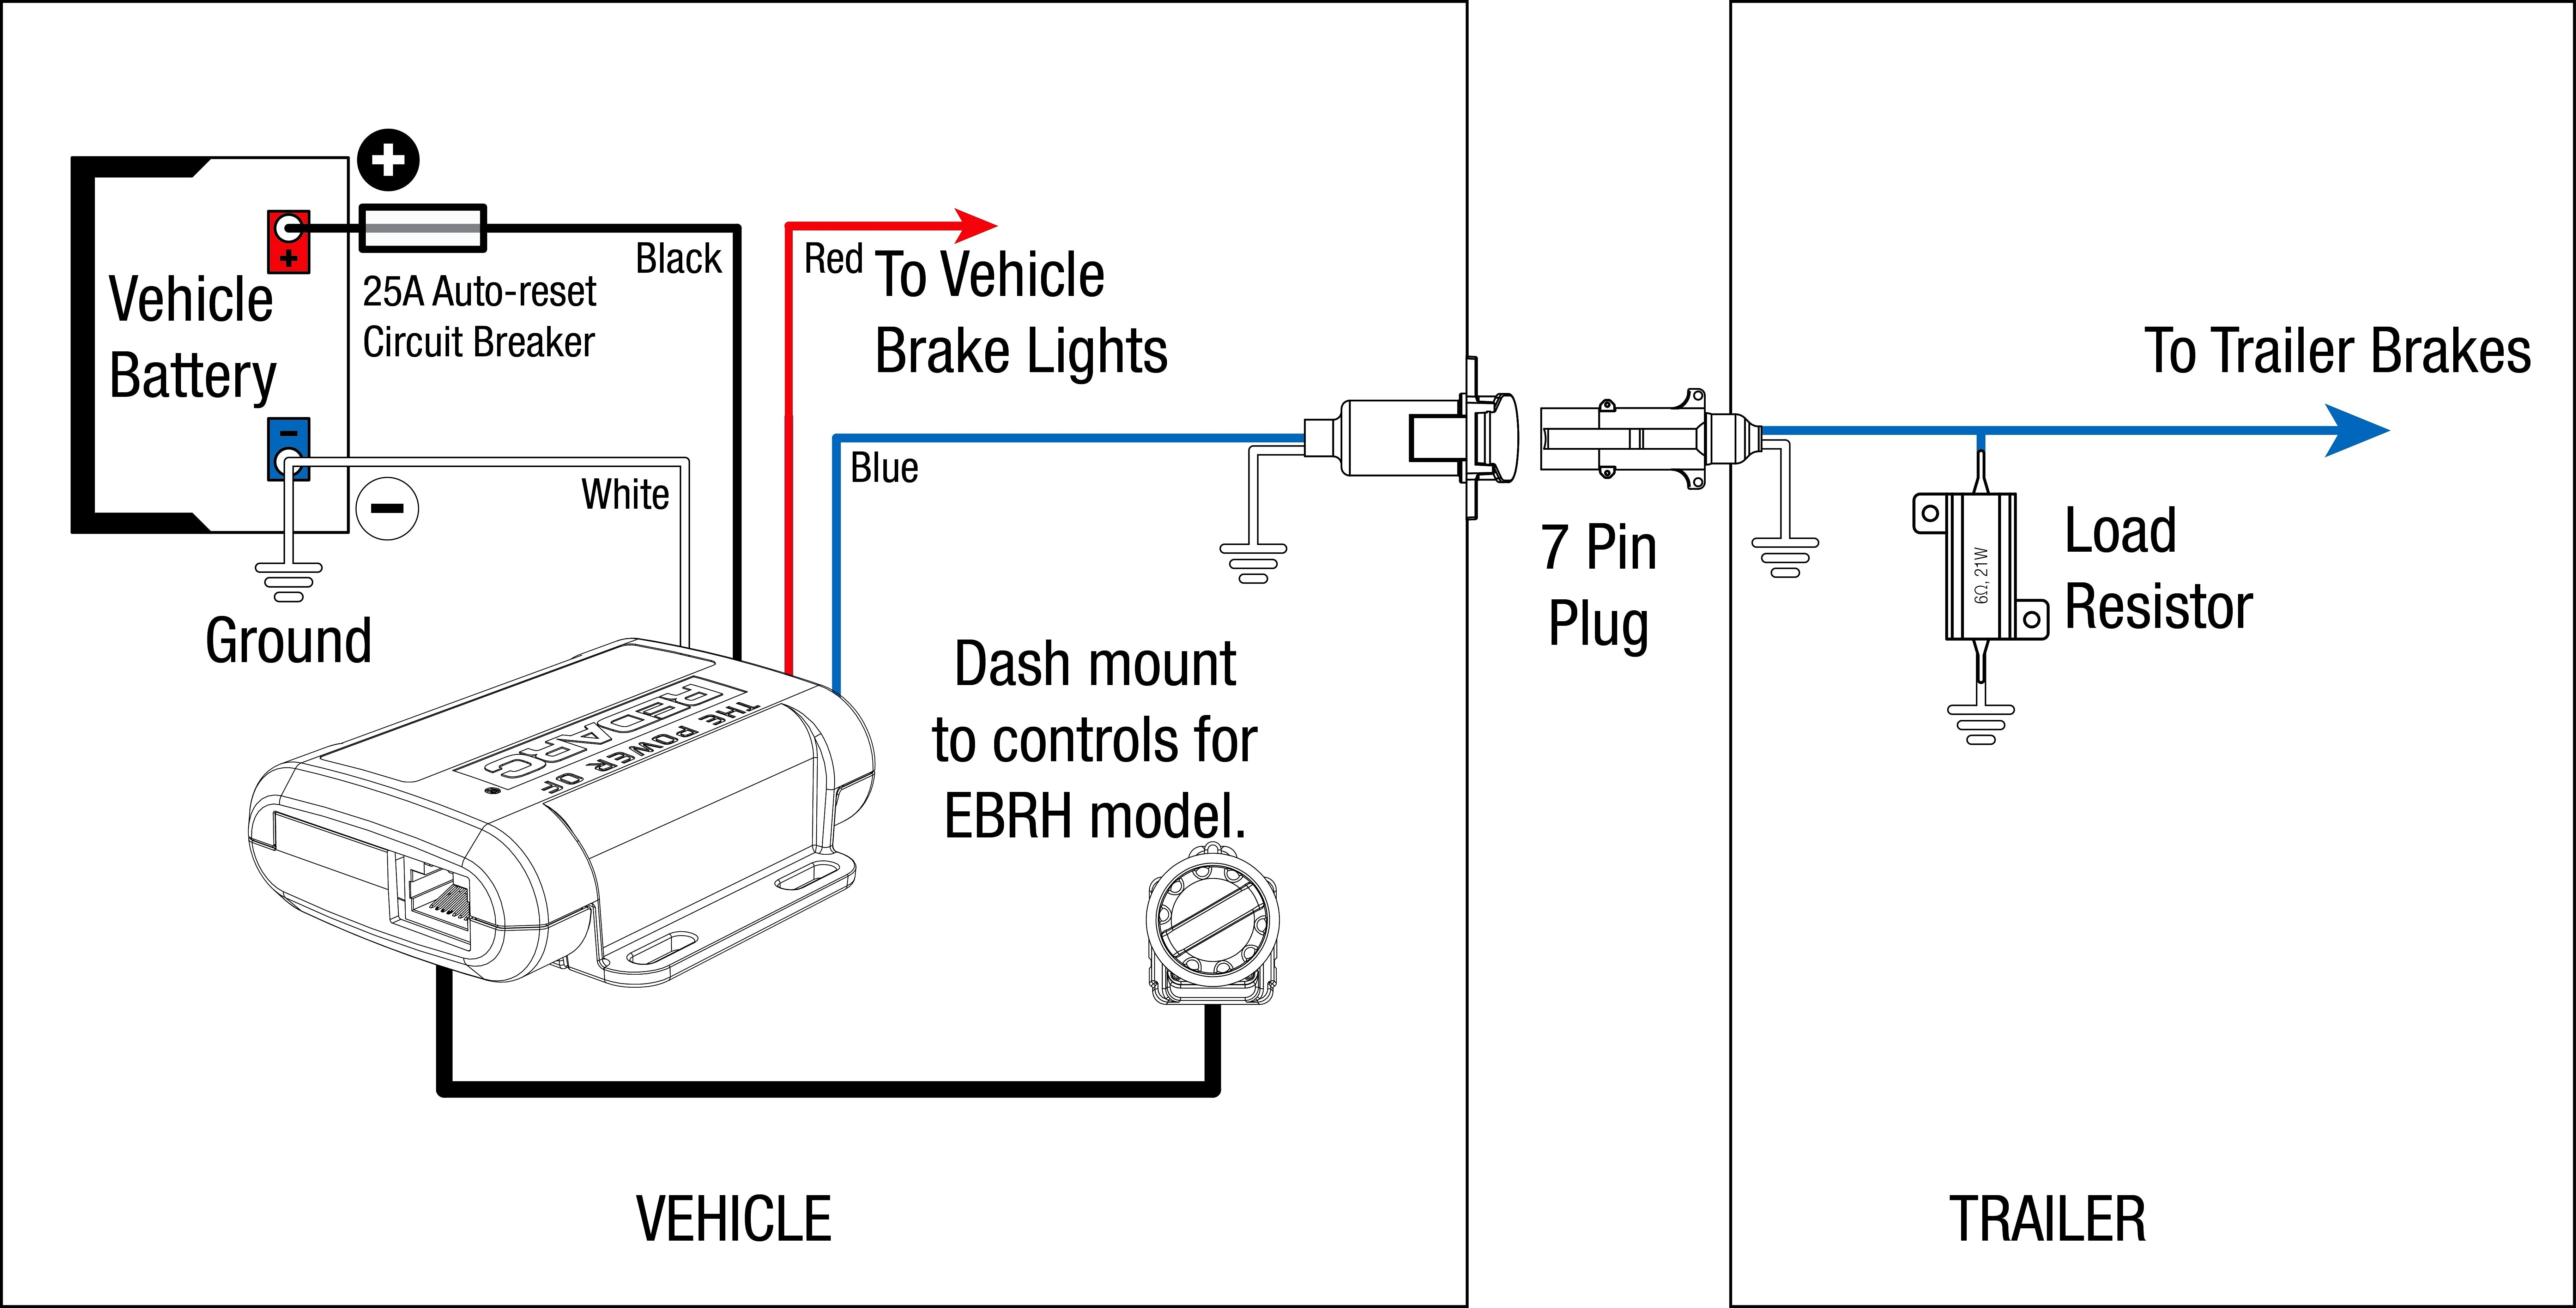 Exciting Trailer Brake Controller Wiring Diagram s And For